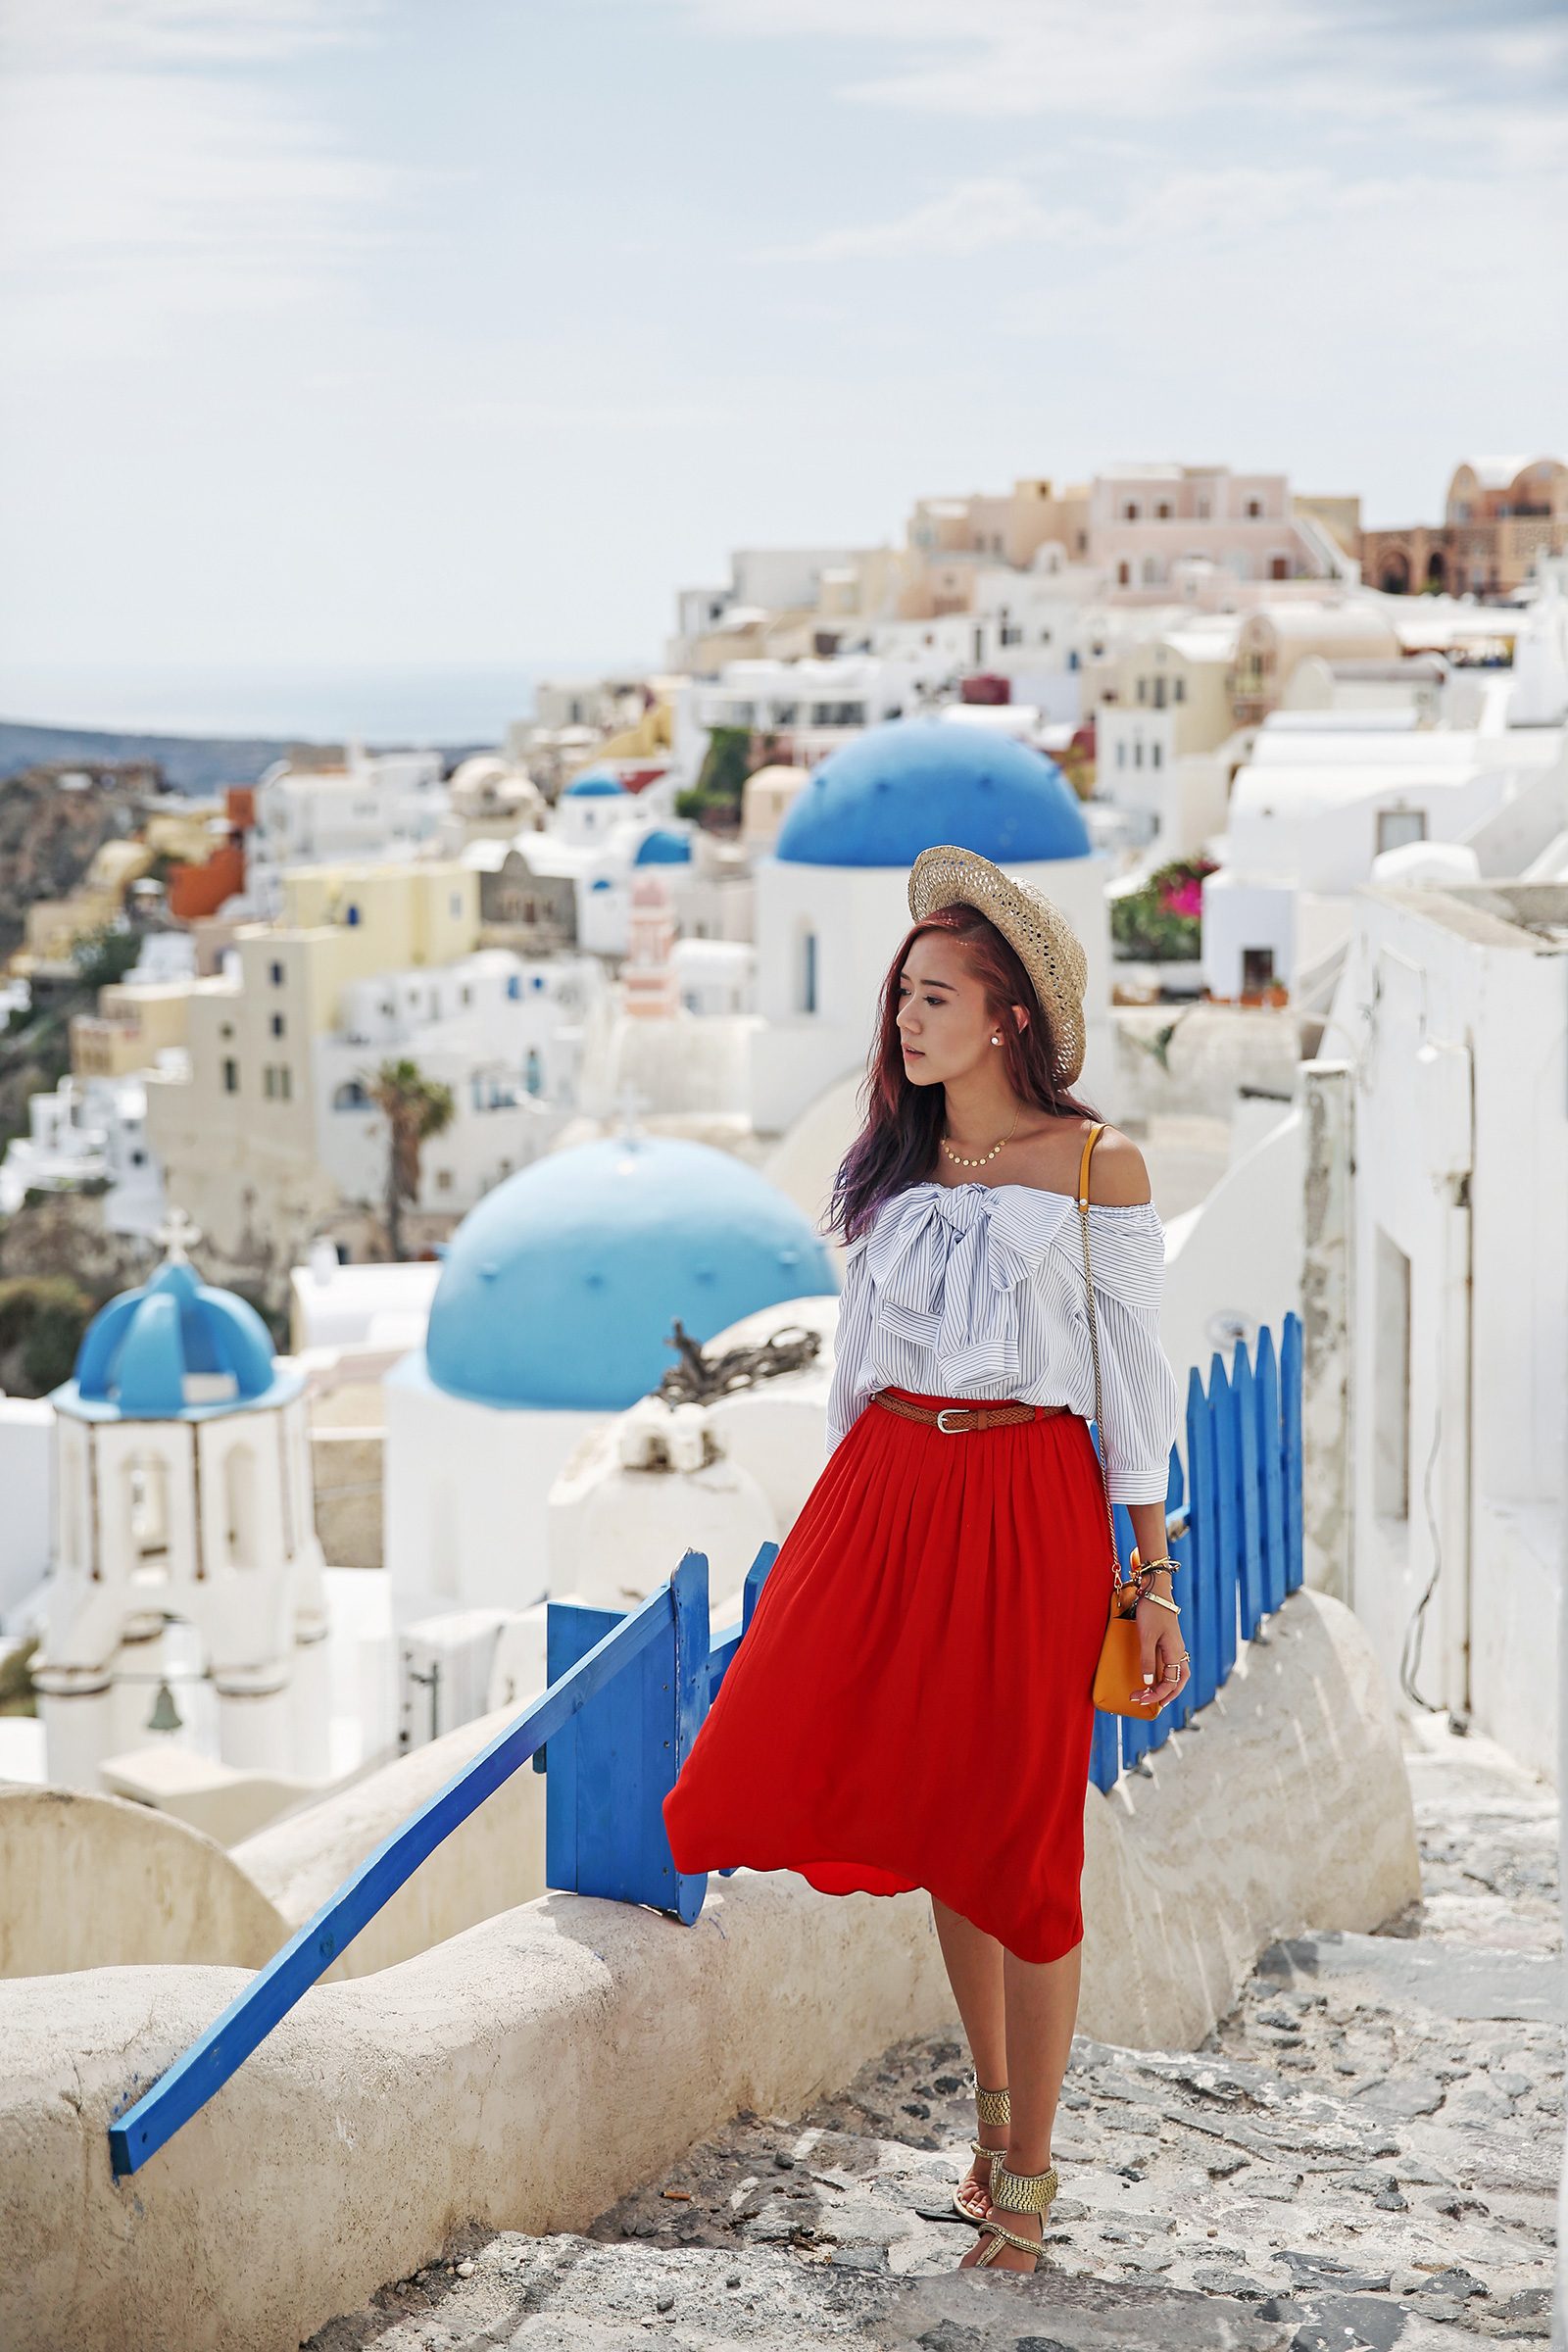 Storets fashion at Oia, Santorini - www.itscamilleco.com